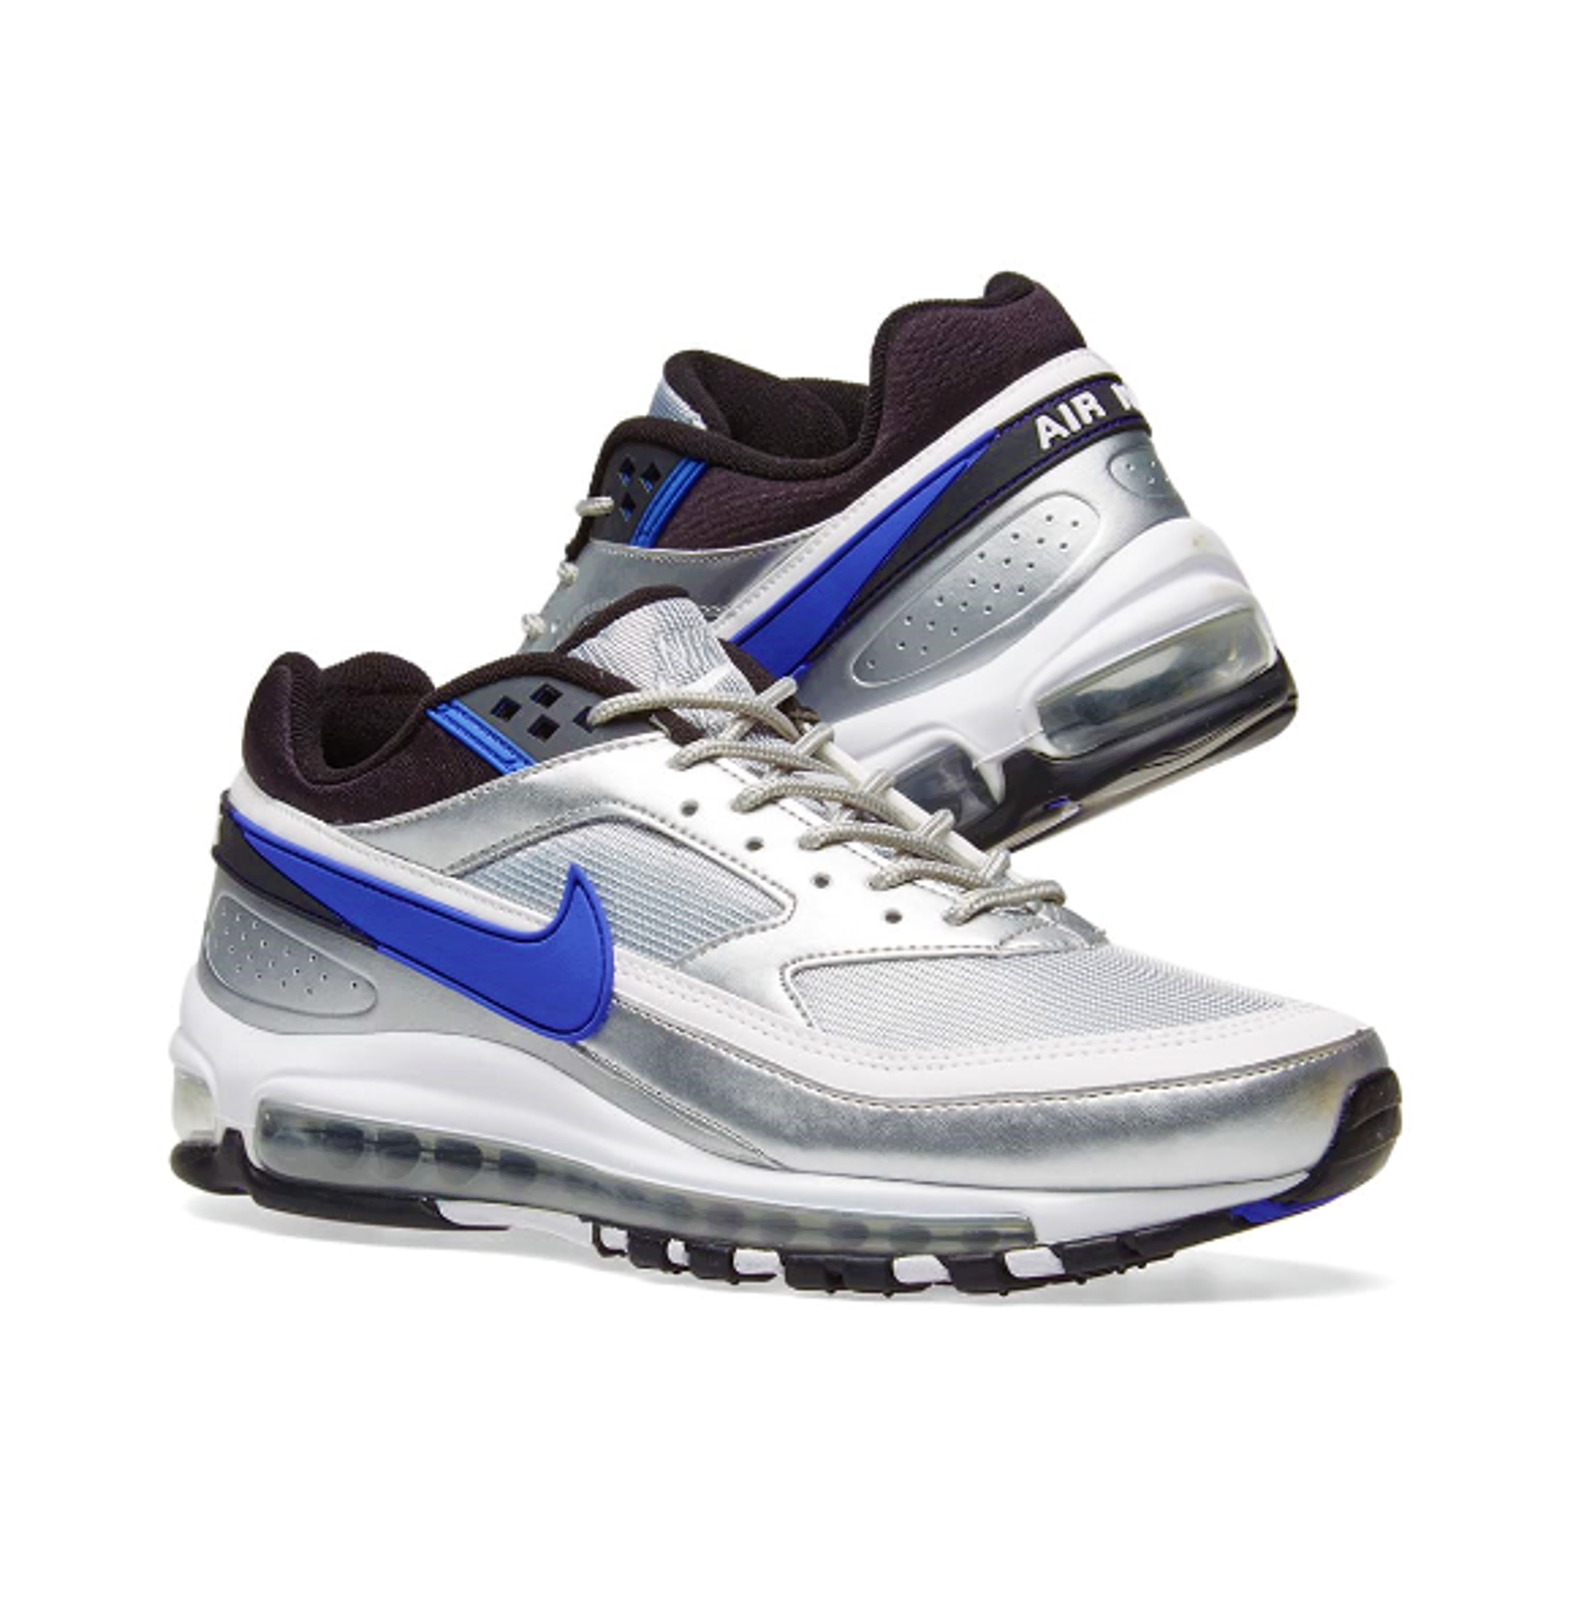 NIKE AIR MAX 97 Bw Mtlc Silver Pers.violet Scarpe Running